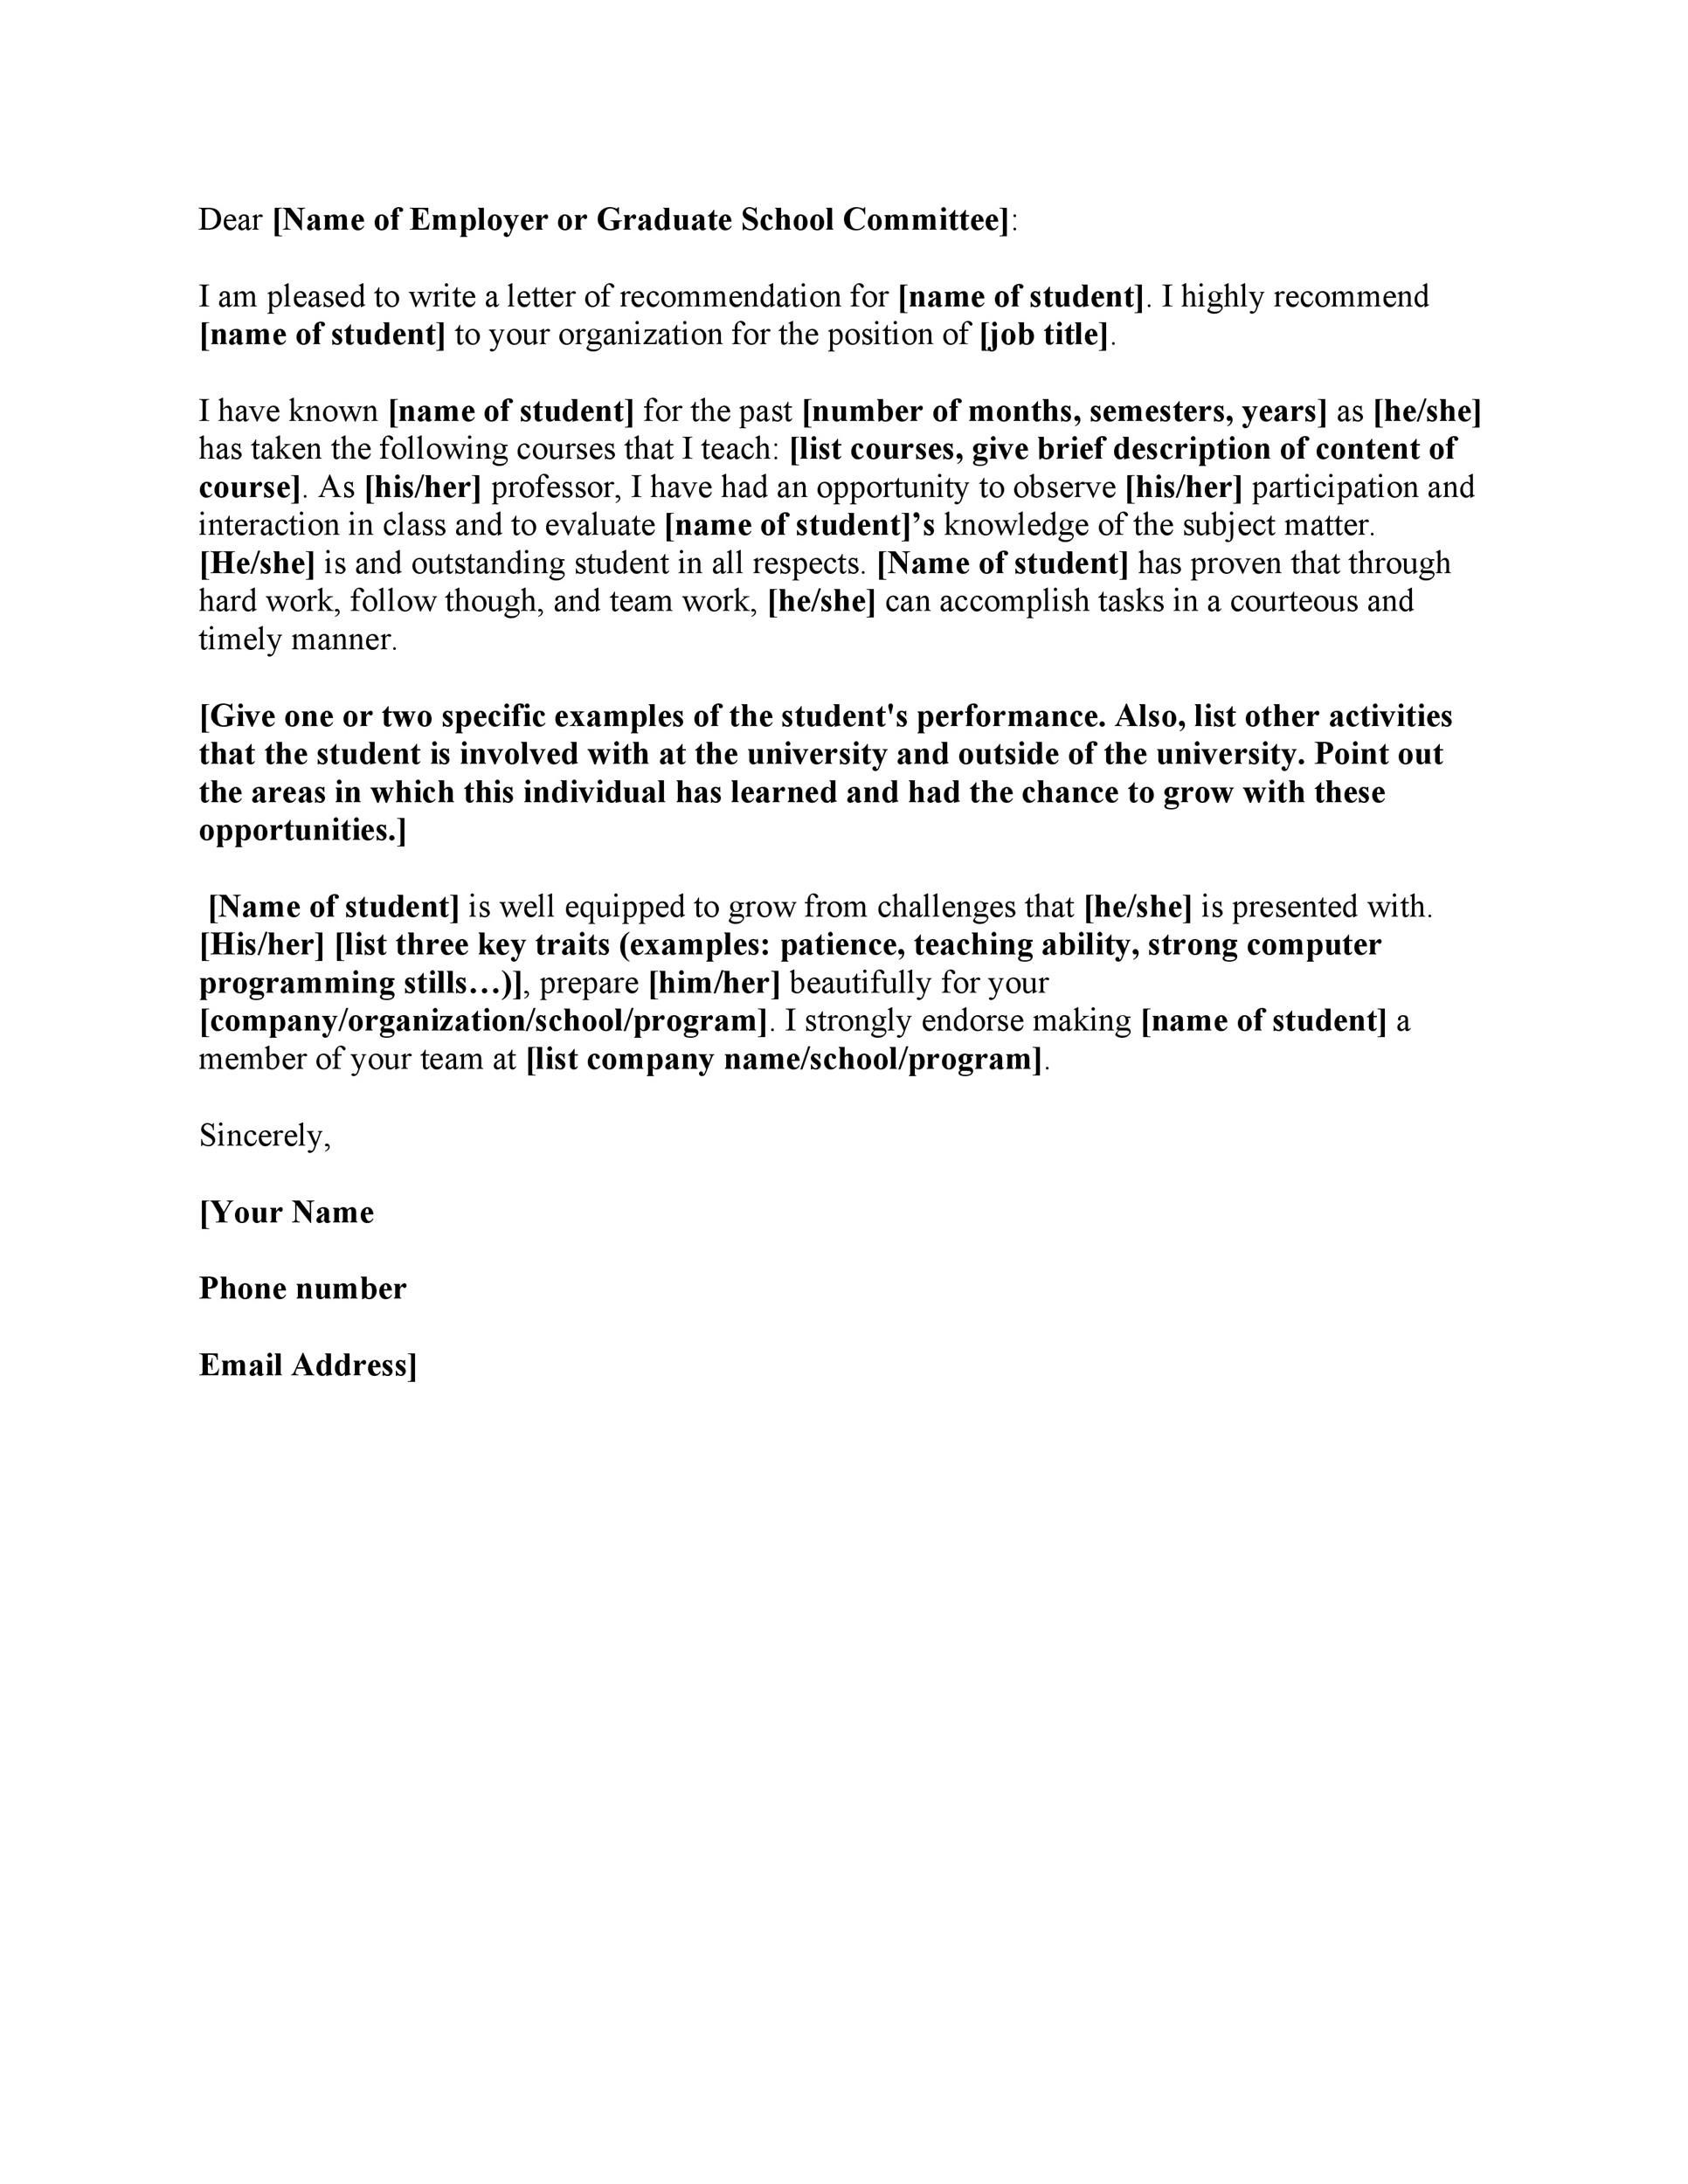 003 Unforgettable Example Of Letter Recommendation For Graduate School From Employer Sample  Pdf GradFull